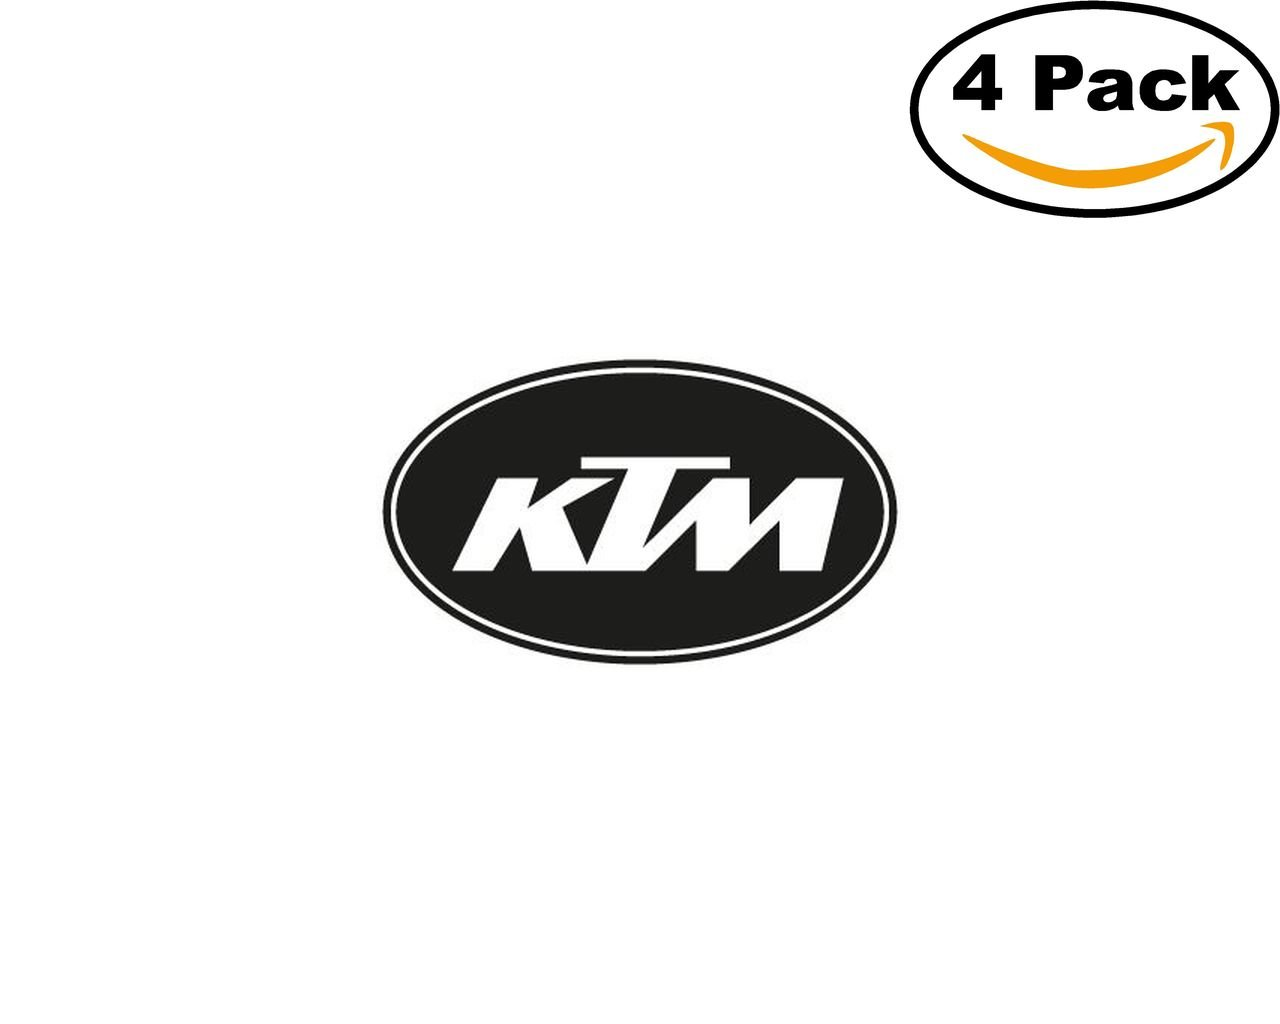 ktm auto 4 Stickers 4x4 Inches Car Bumper Window Sticker Decal canvasbylam